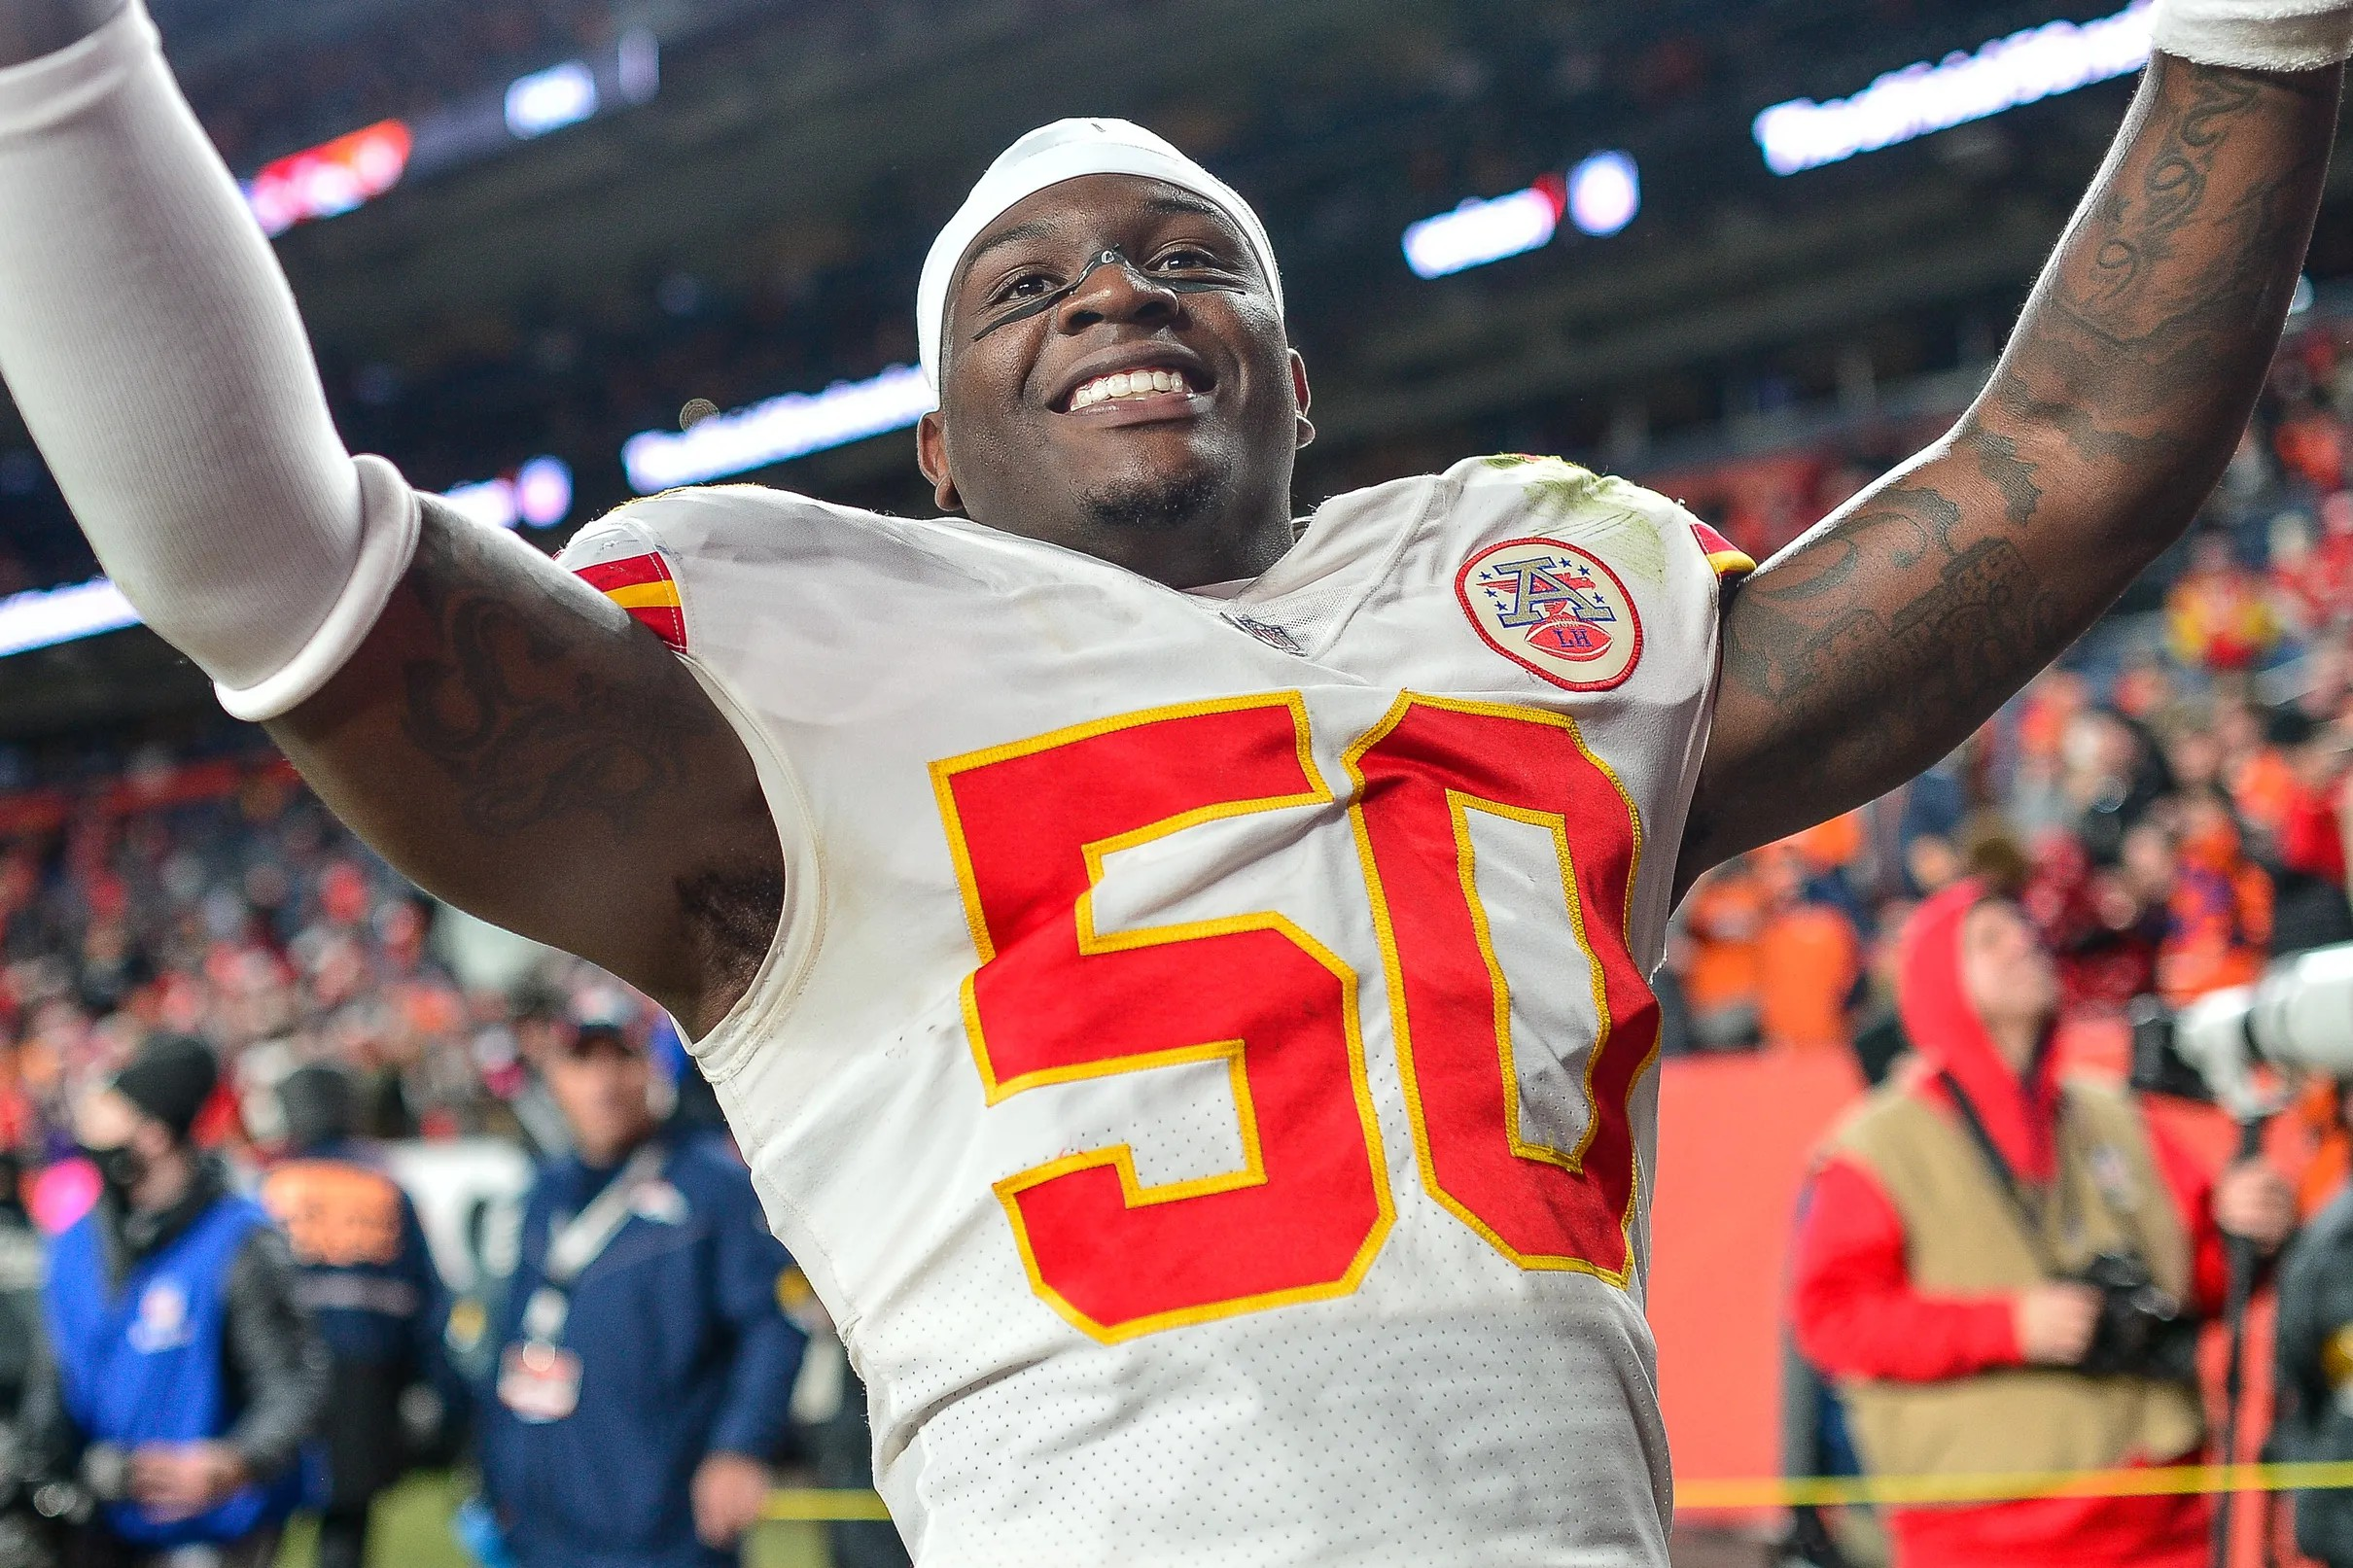 What We Saw From Patrick Mahomes Against The Chicago Bears